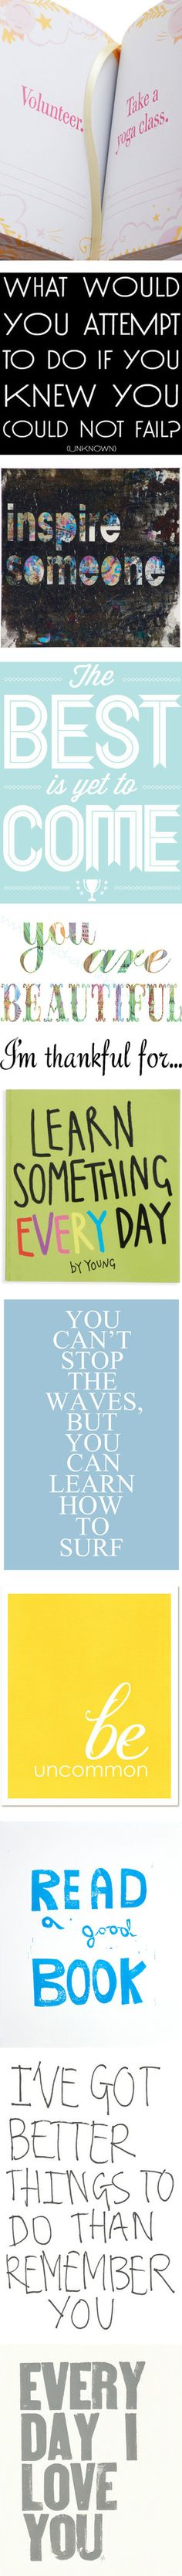 """Motivational Reminders"" by trendingstatement on Polyvore"